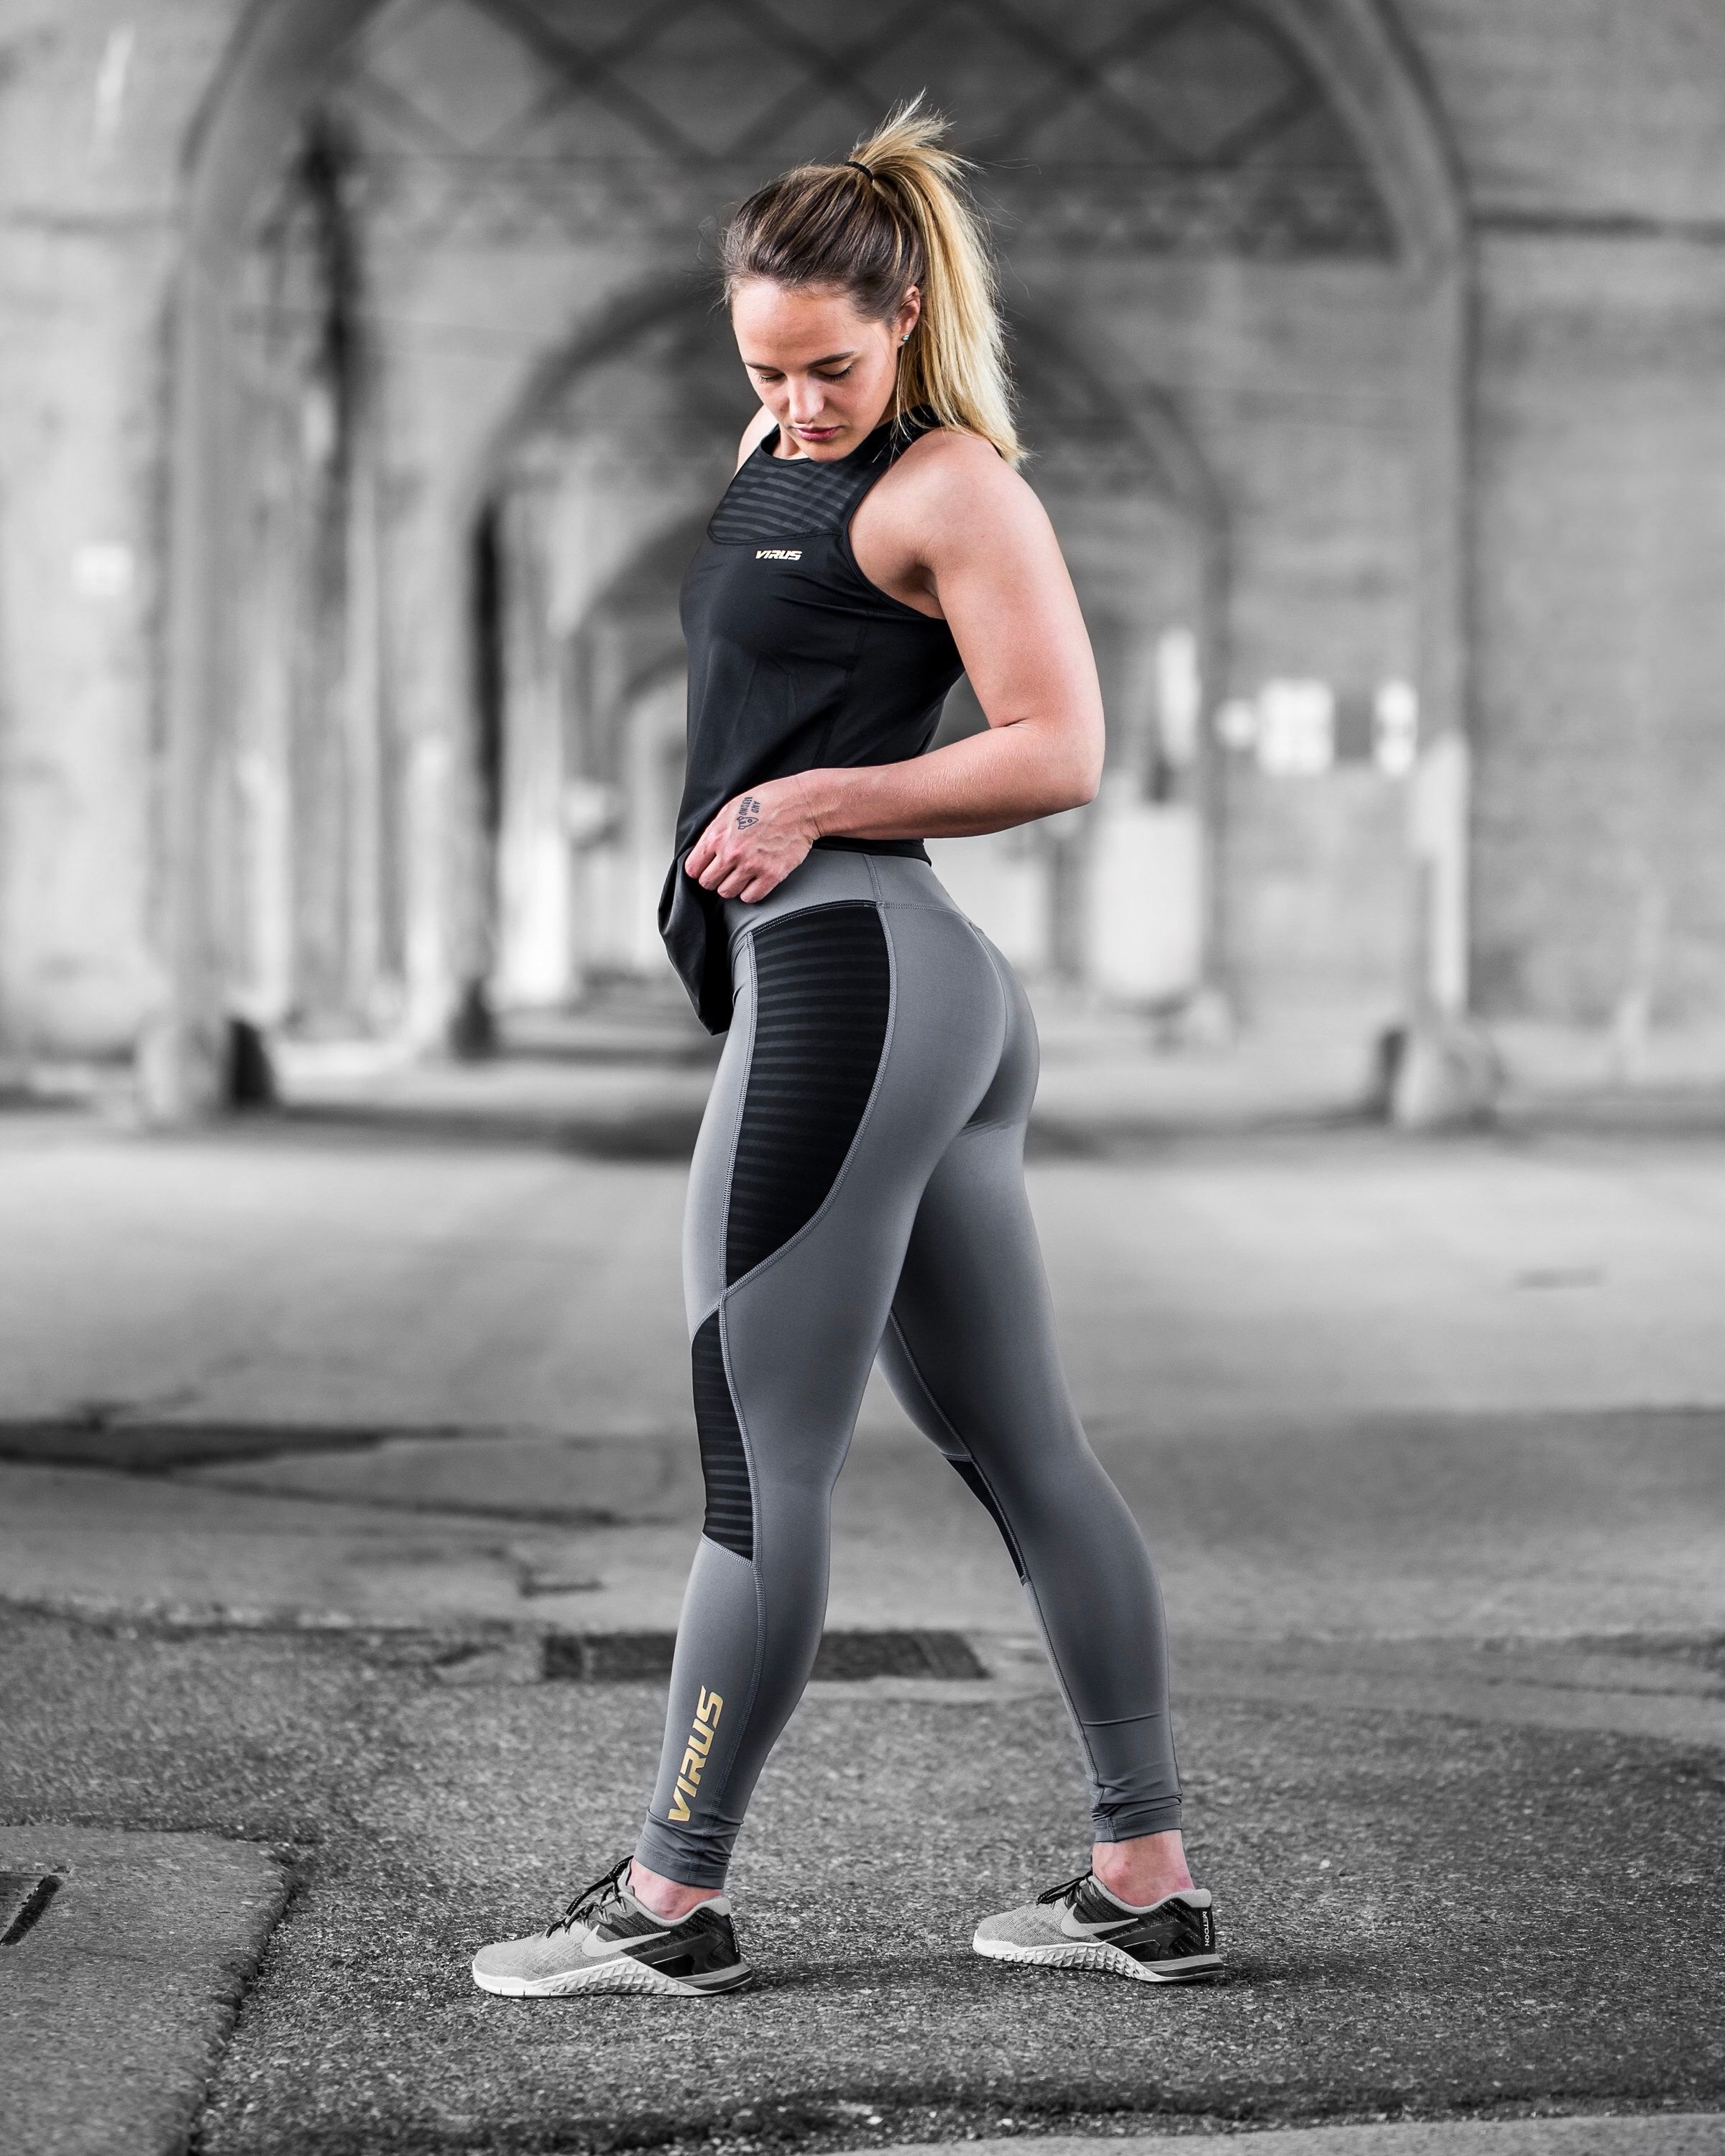 4082e9757f From the gym to the street our Women's Kilo Compression Pant is ready for  anything. | Athlete // @jfraank | @virusintl #virusintl  #thepassionthatdefinesyou ...